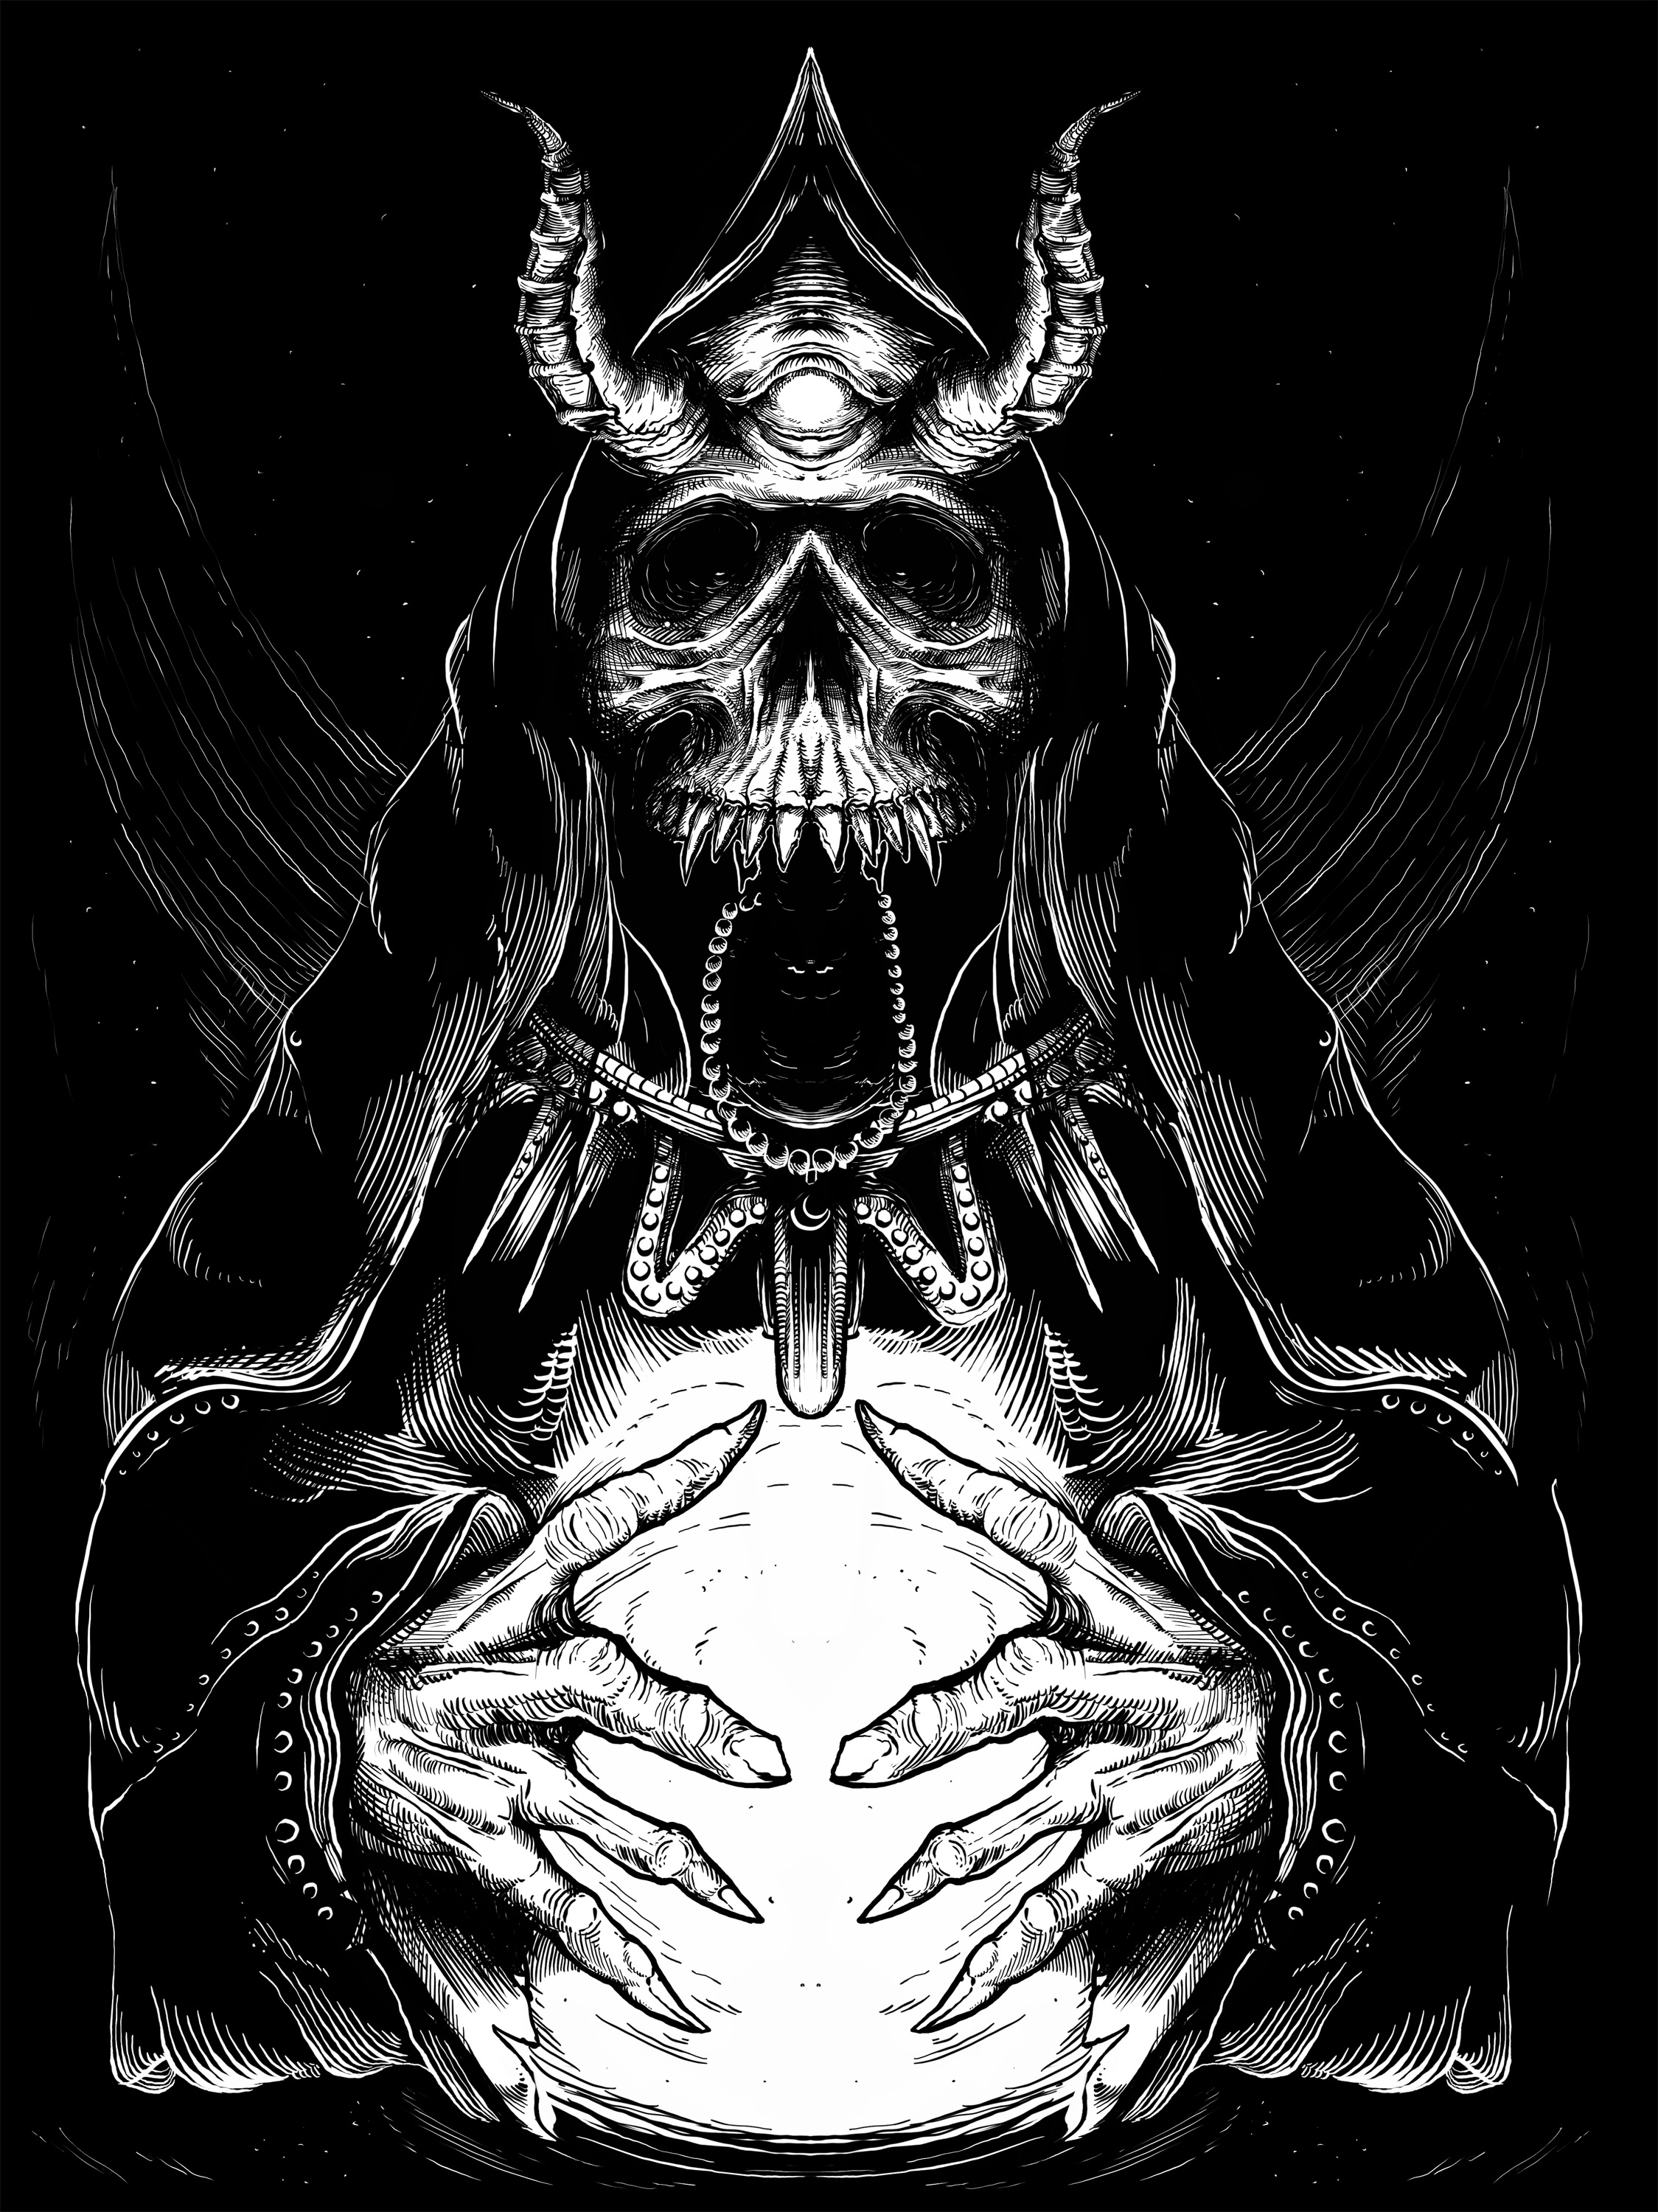 Satan Priest worshipping - designed by Giovanni Tamponi illustrations